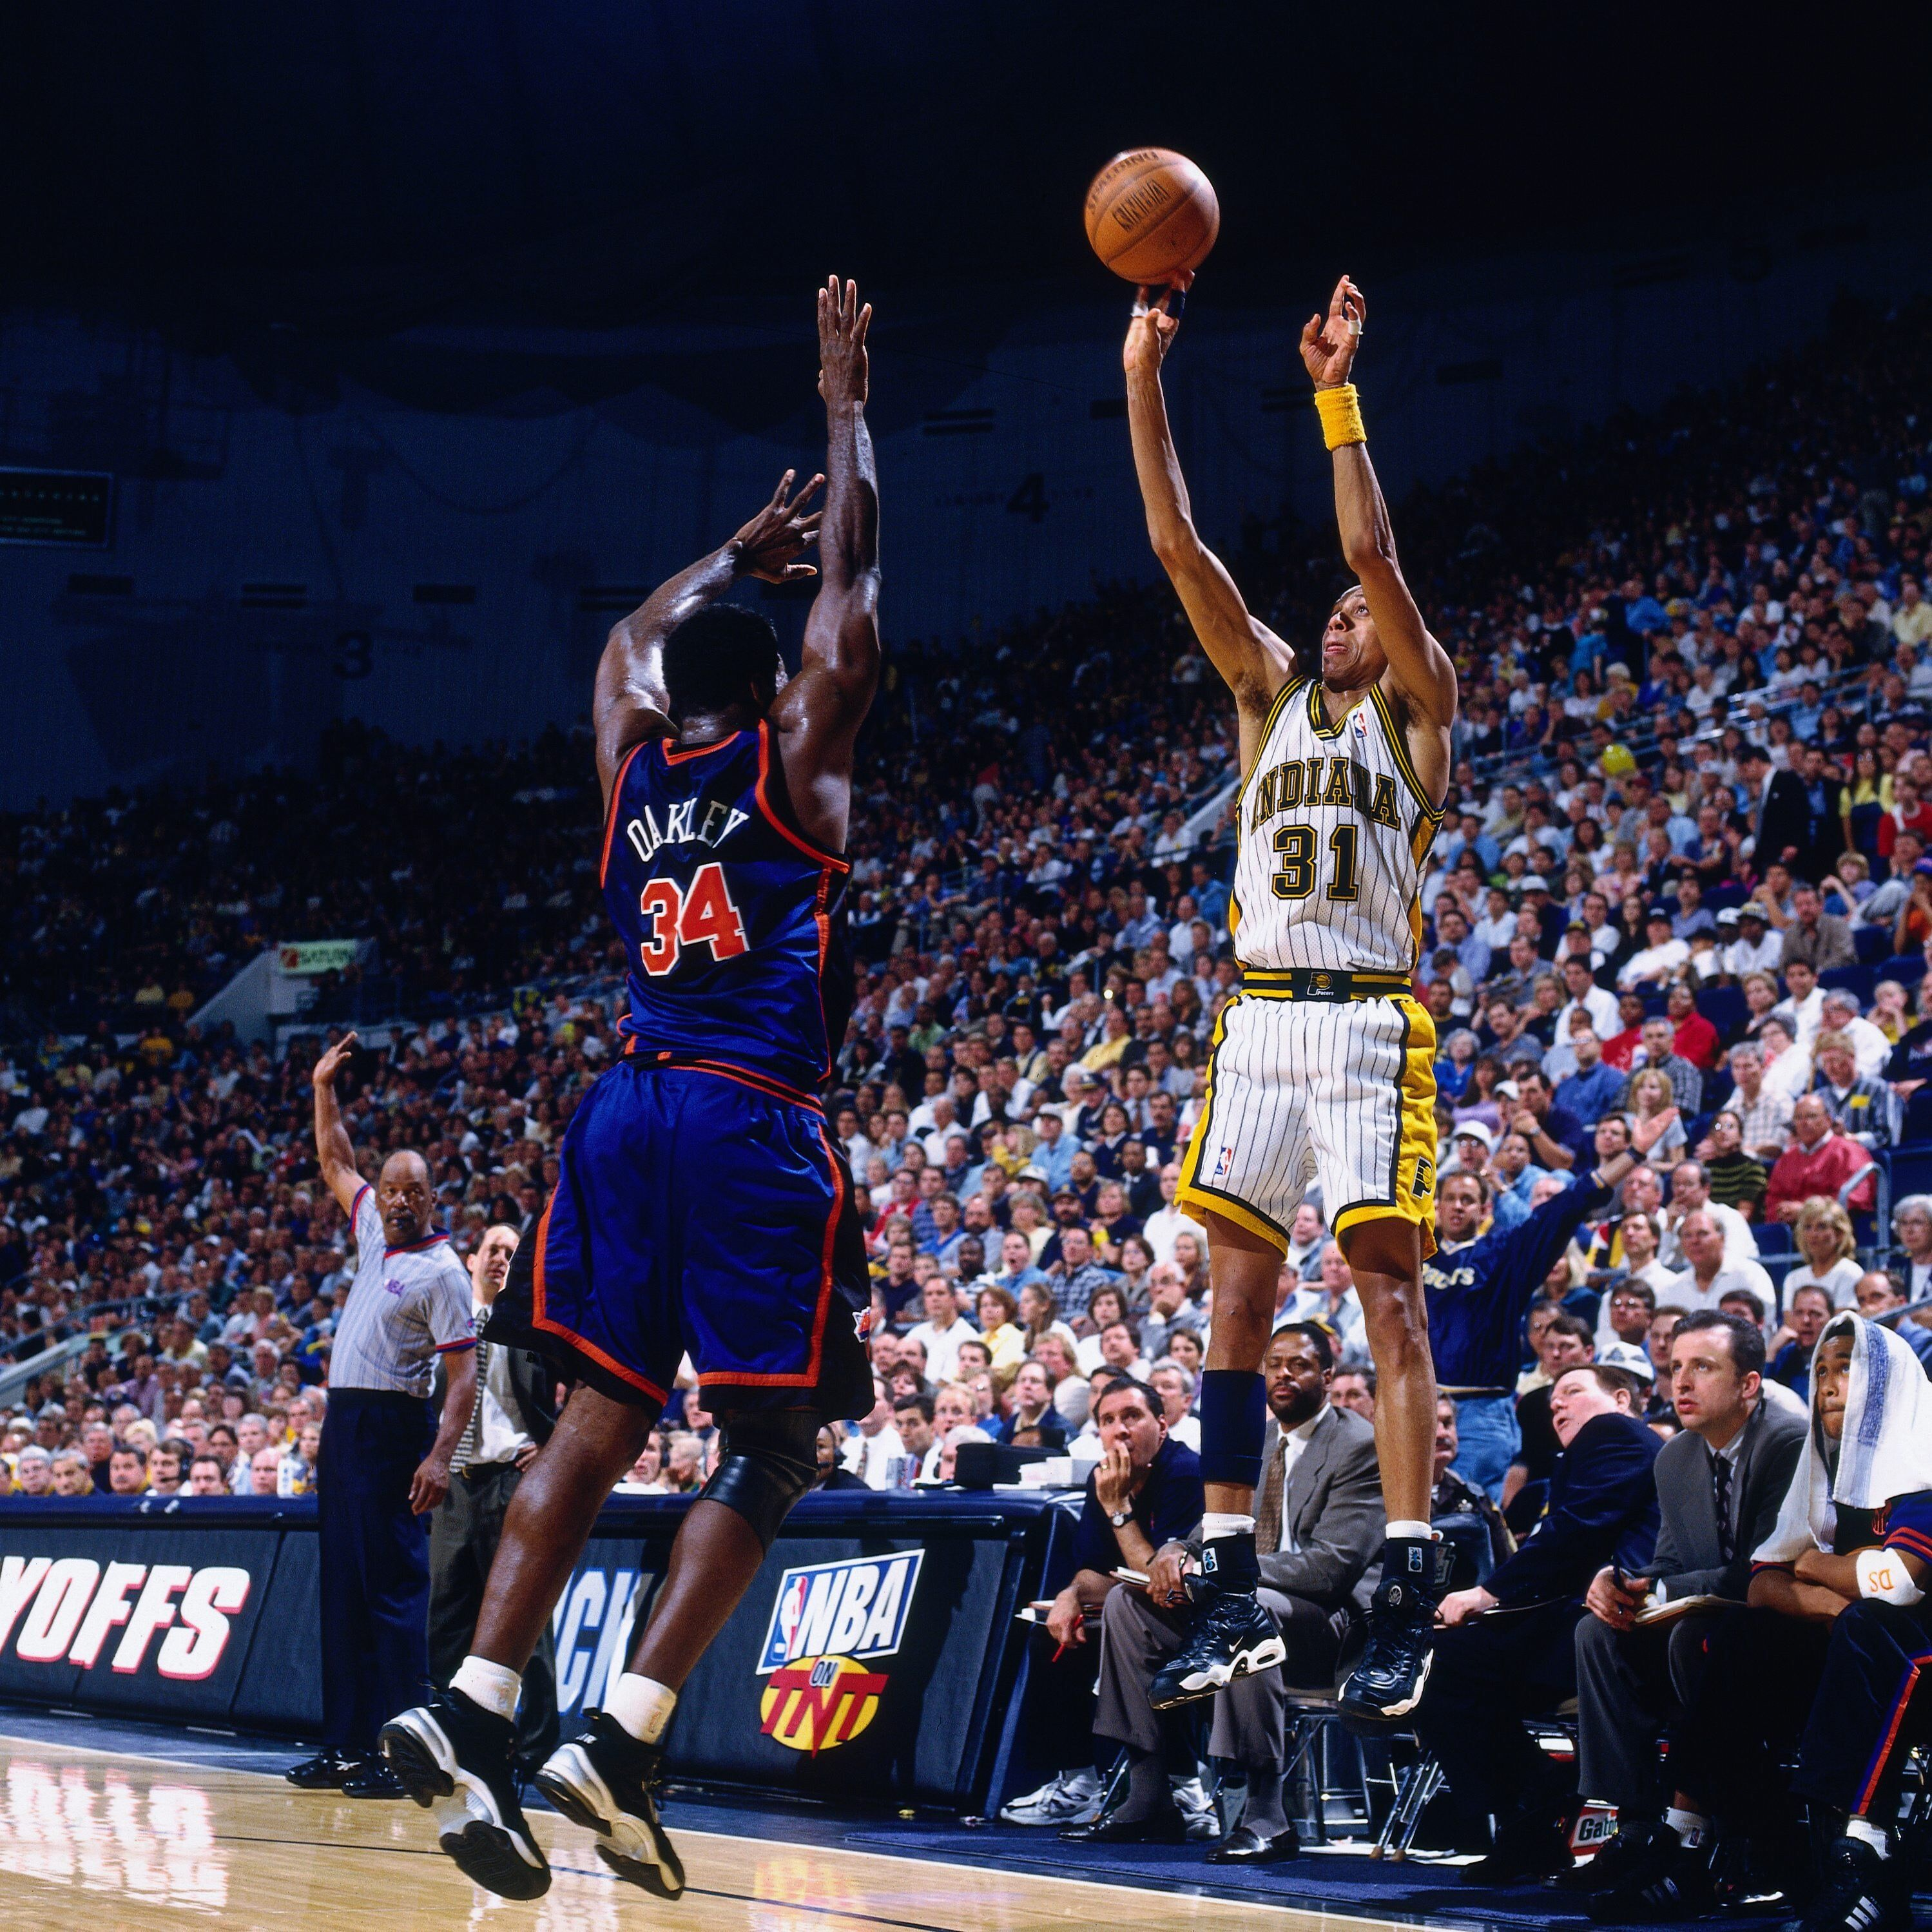 88982373-1998-eastern-conference-semifinals-game-2-new-york-knicks-vs-indiana-pacers.jpg